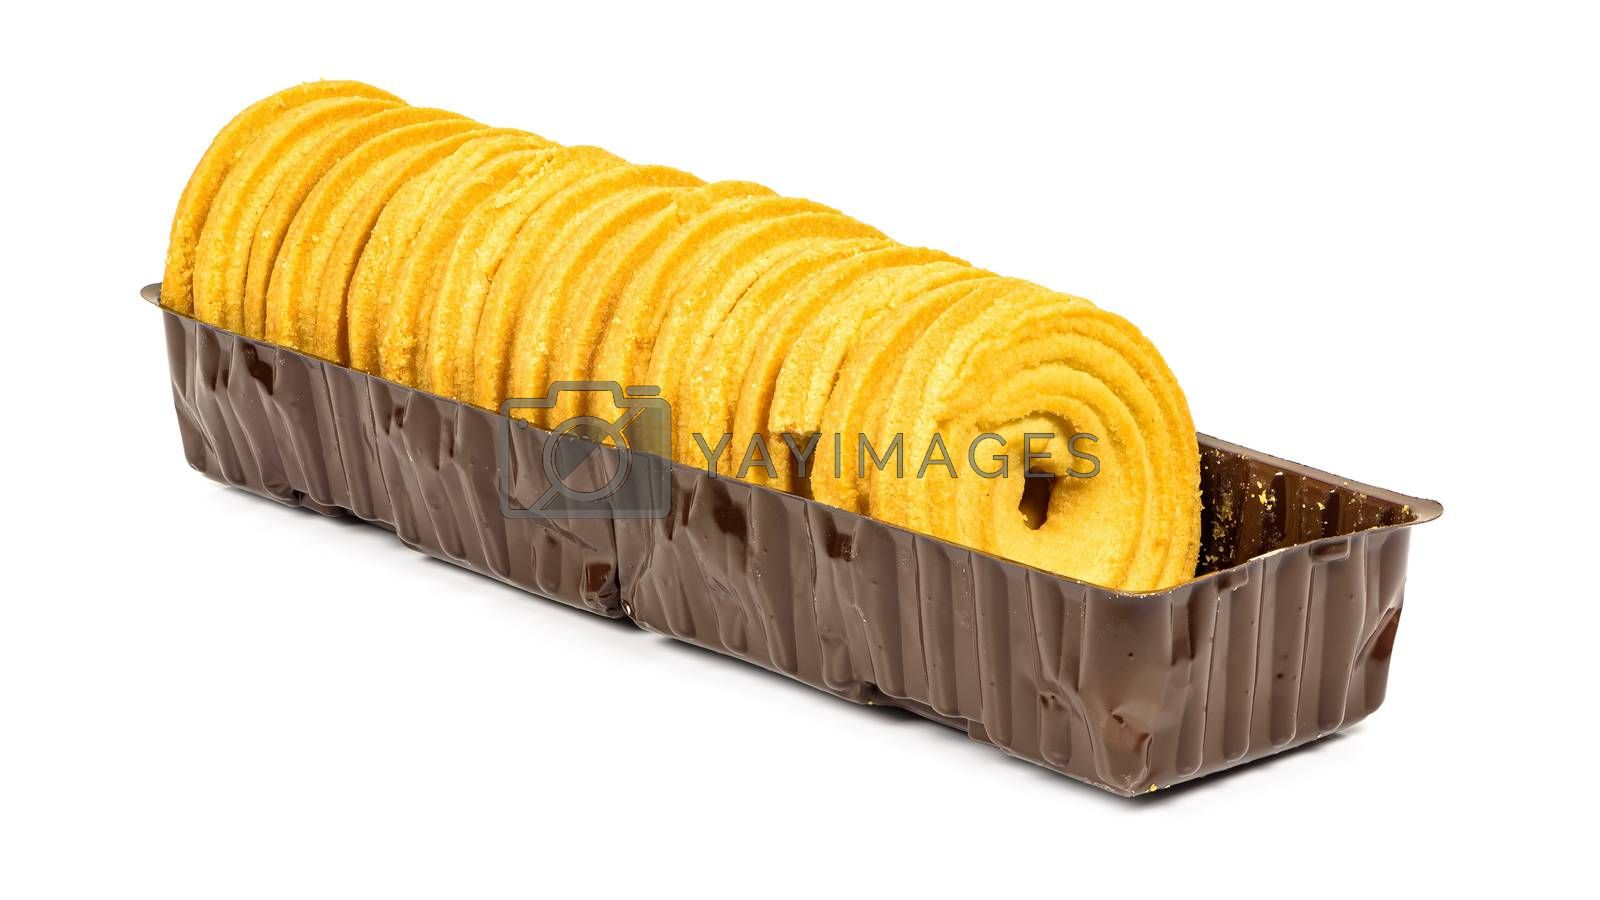 Butter cookies in a box isolated on white background with clipping path